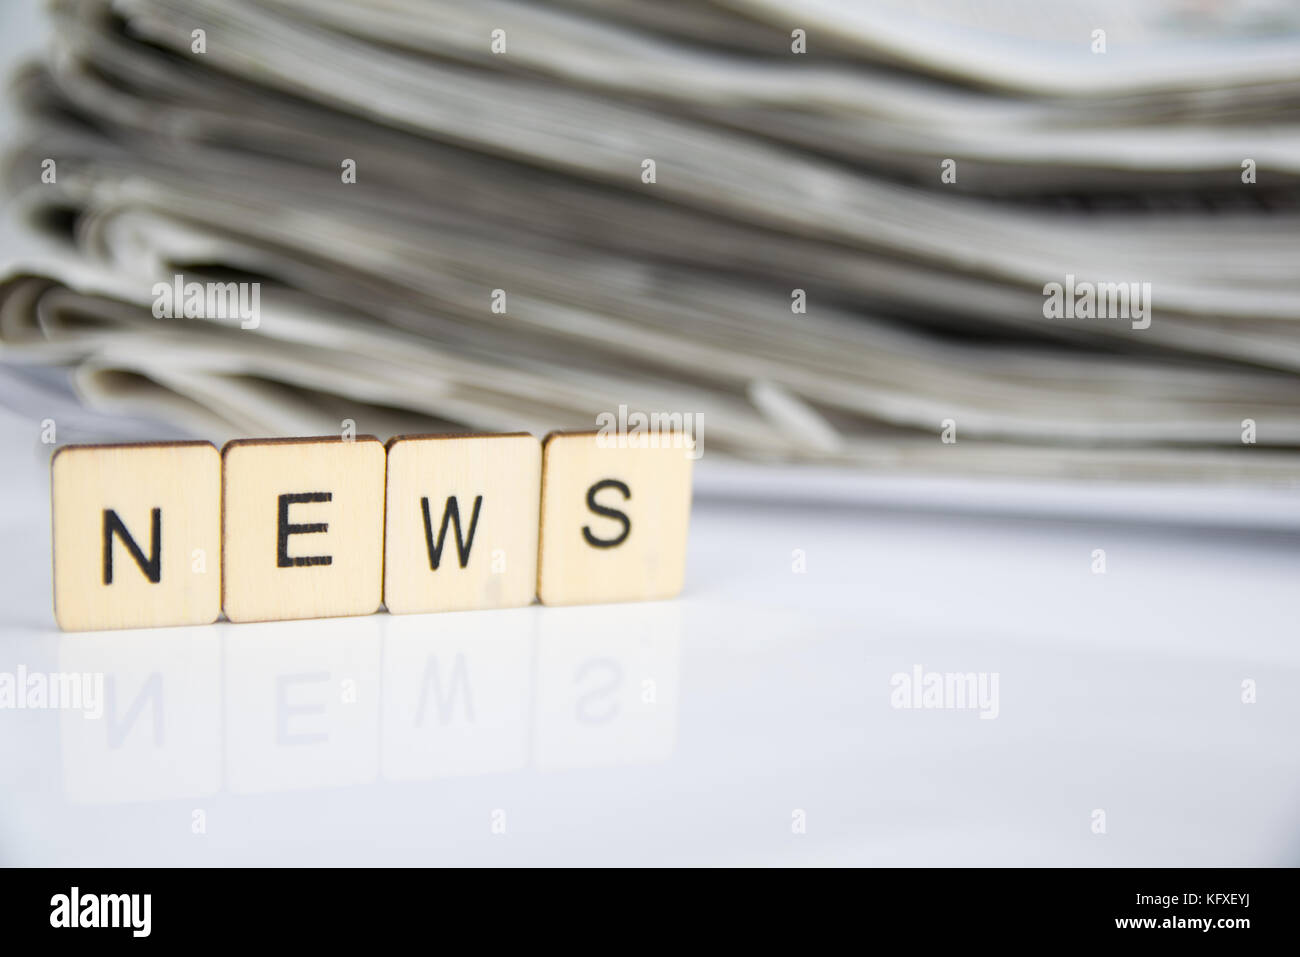 the word news written in letter tiles on a reflective white surface